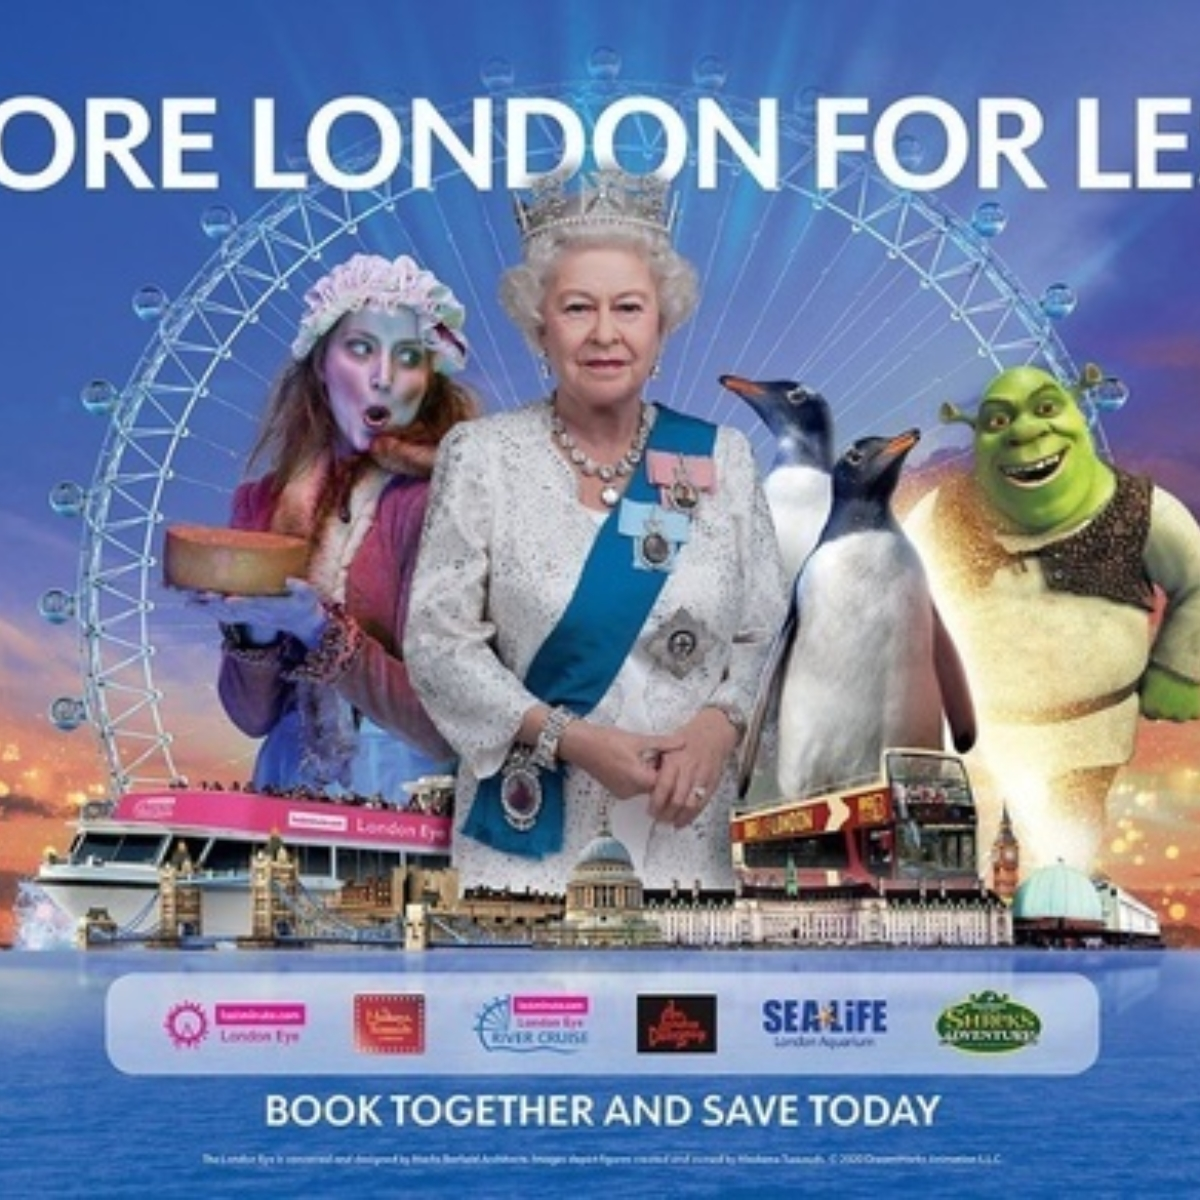 Merlin's Magical London: 3 attractions in 1 – The lastminute.com London Eye + Madame Tussauds + The London Dungeon Images